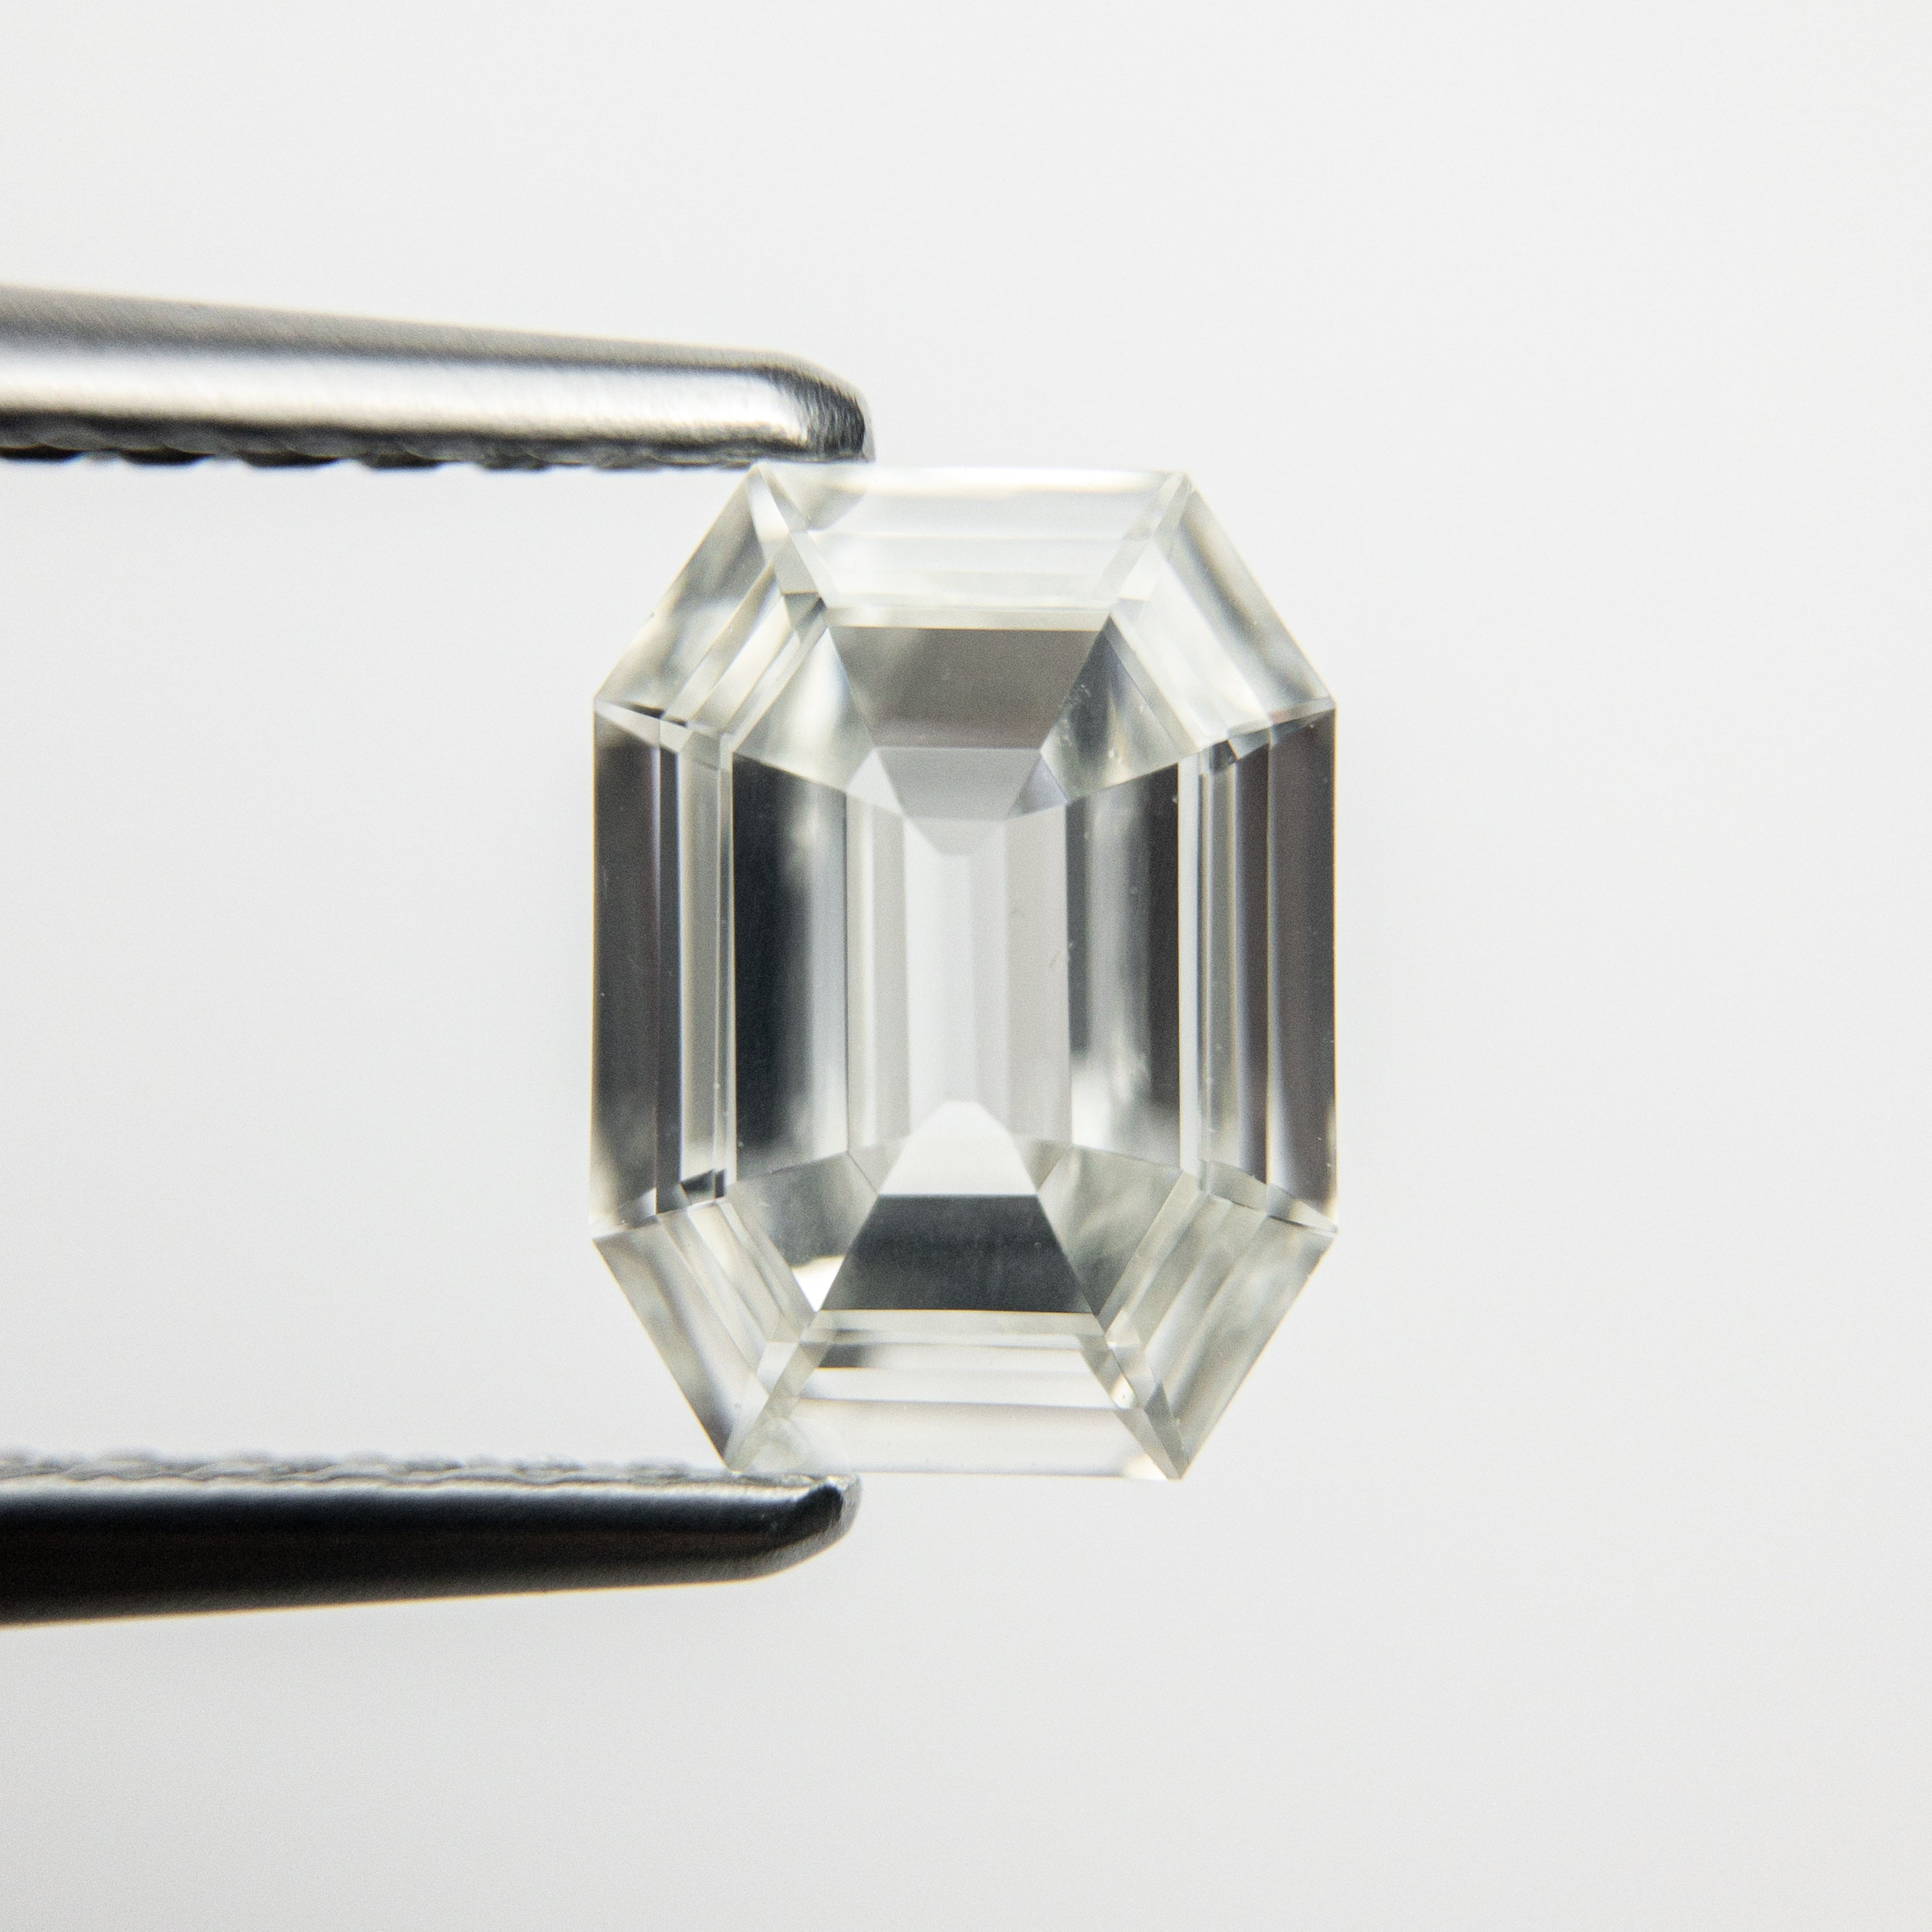 1.01ct GIA Certified VS2 G color natural emerald cut diamond for custom work - inventory code ECWG101 - Salt & Pepper Celestial Diamond Engagement Rings and Wedding Bands  by Midwinter Co.